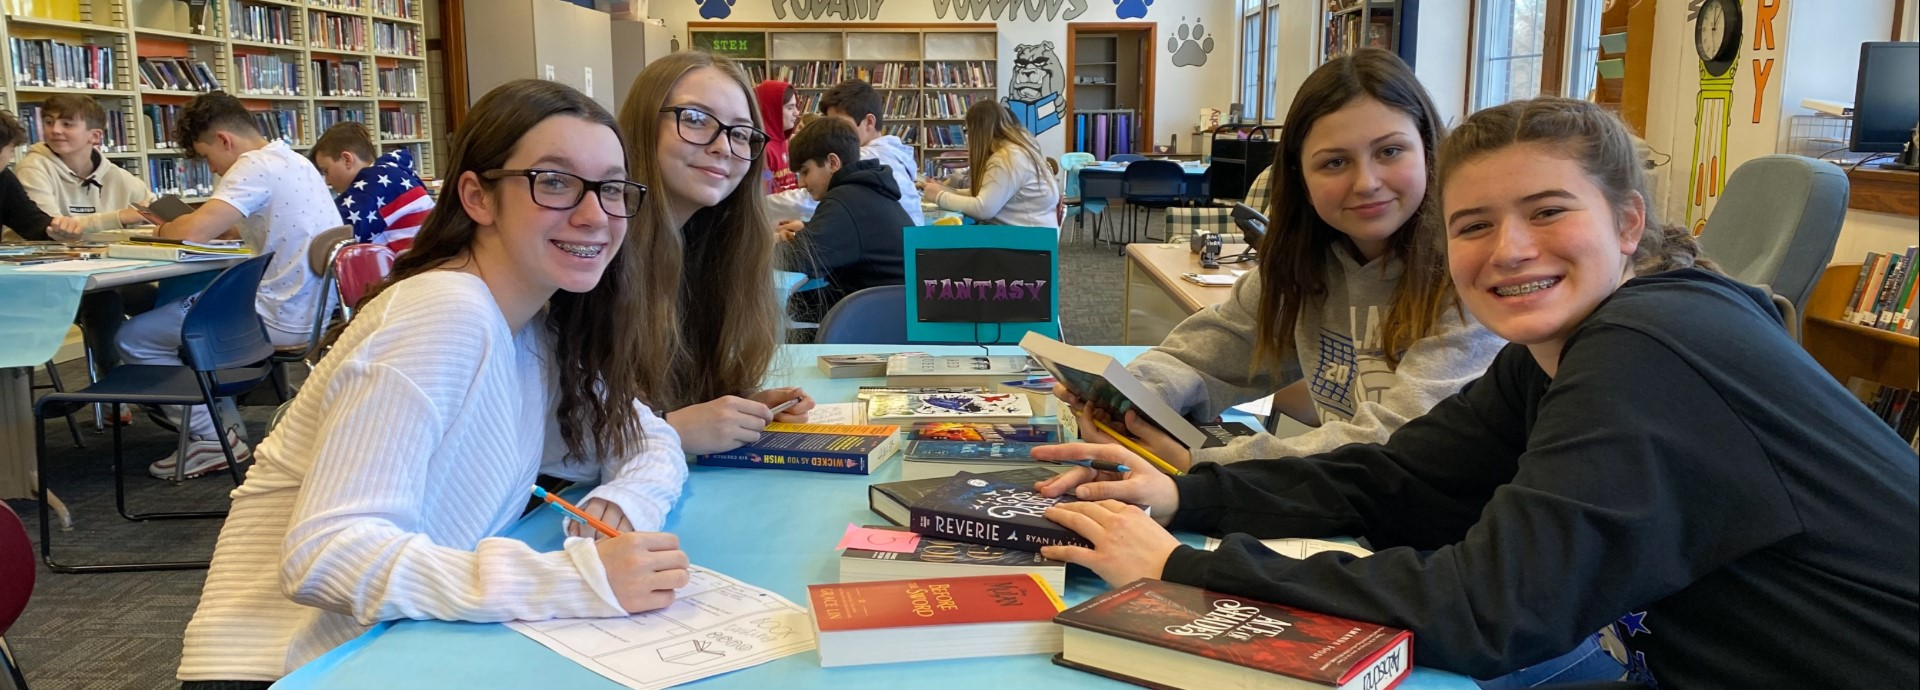 Eighth grade students in library looking at books as part of book tasting assignment.